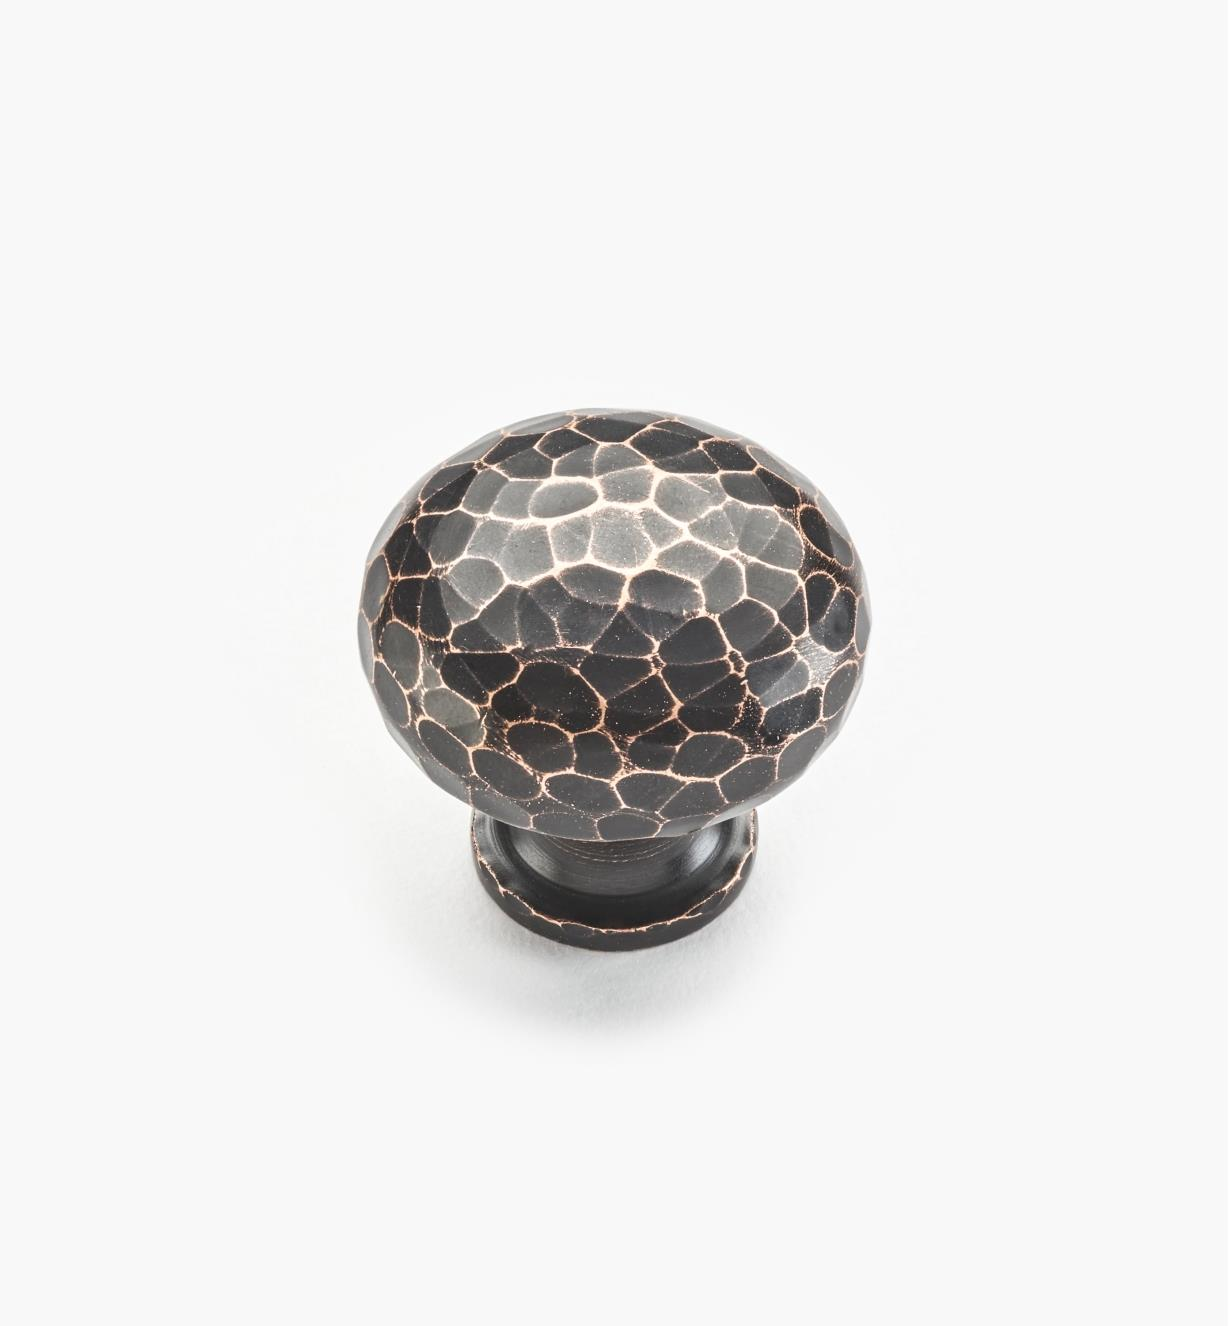 01W4345 - Hammered Oil-Rubbed Bronze Knob